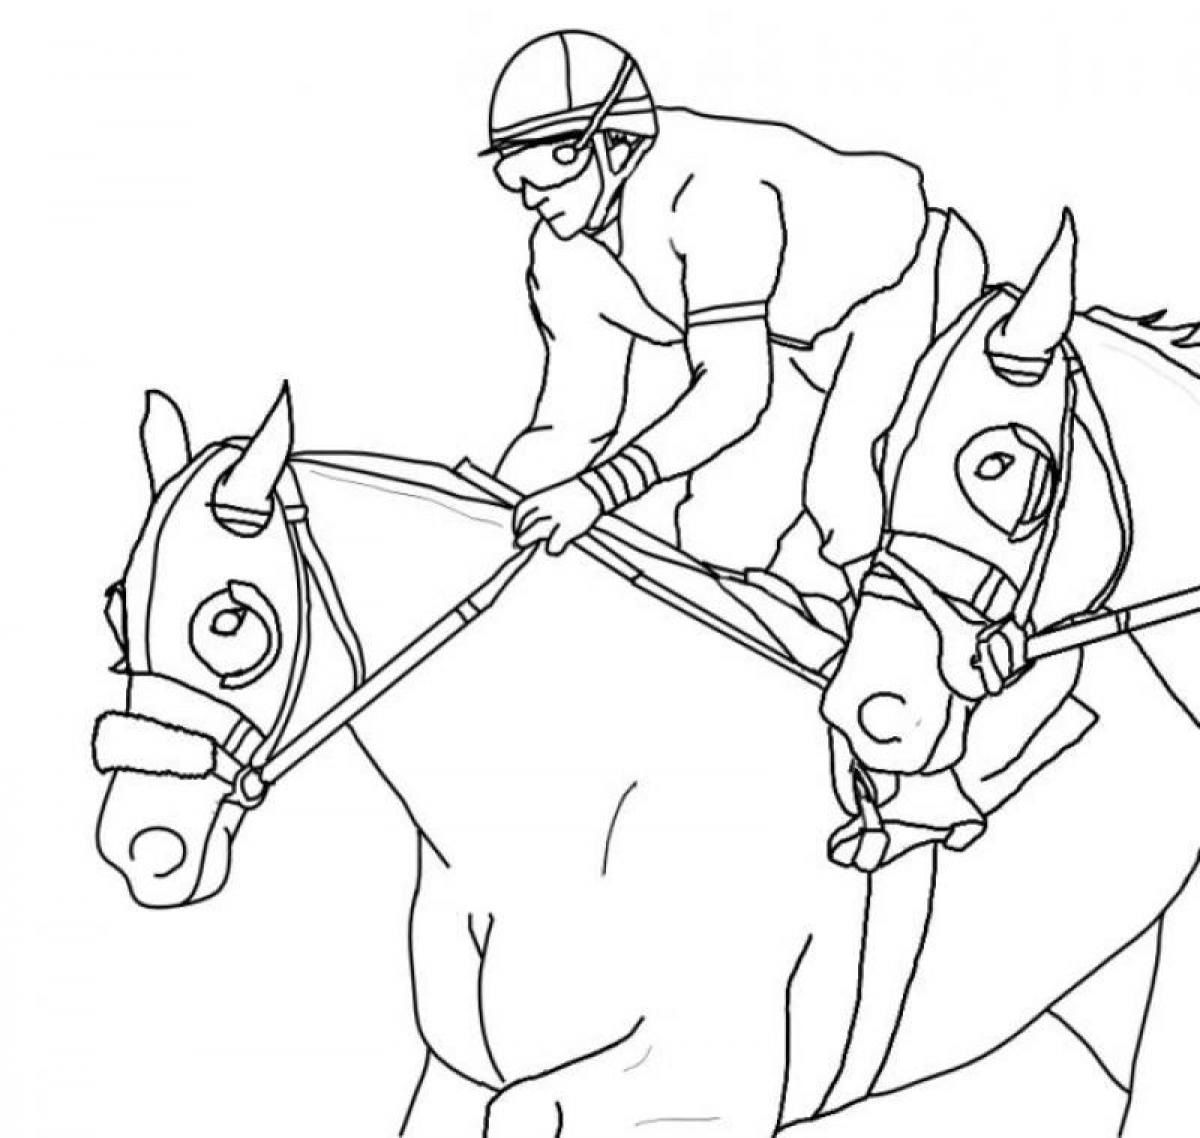 Race Horse Coloring Pages K5 Worksheets Horse Coloring Pages Horse Coloring Horse Coloring Books